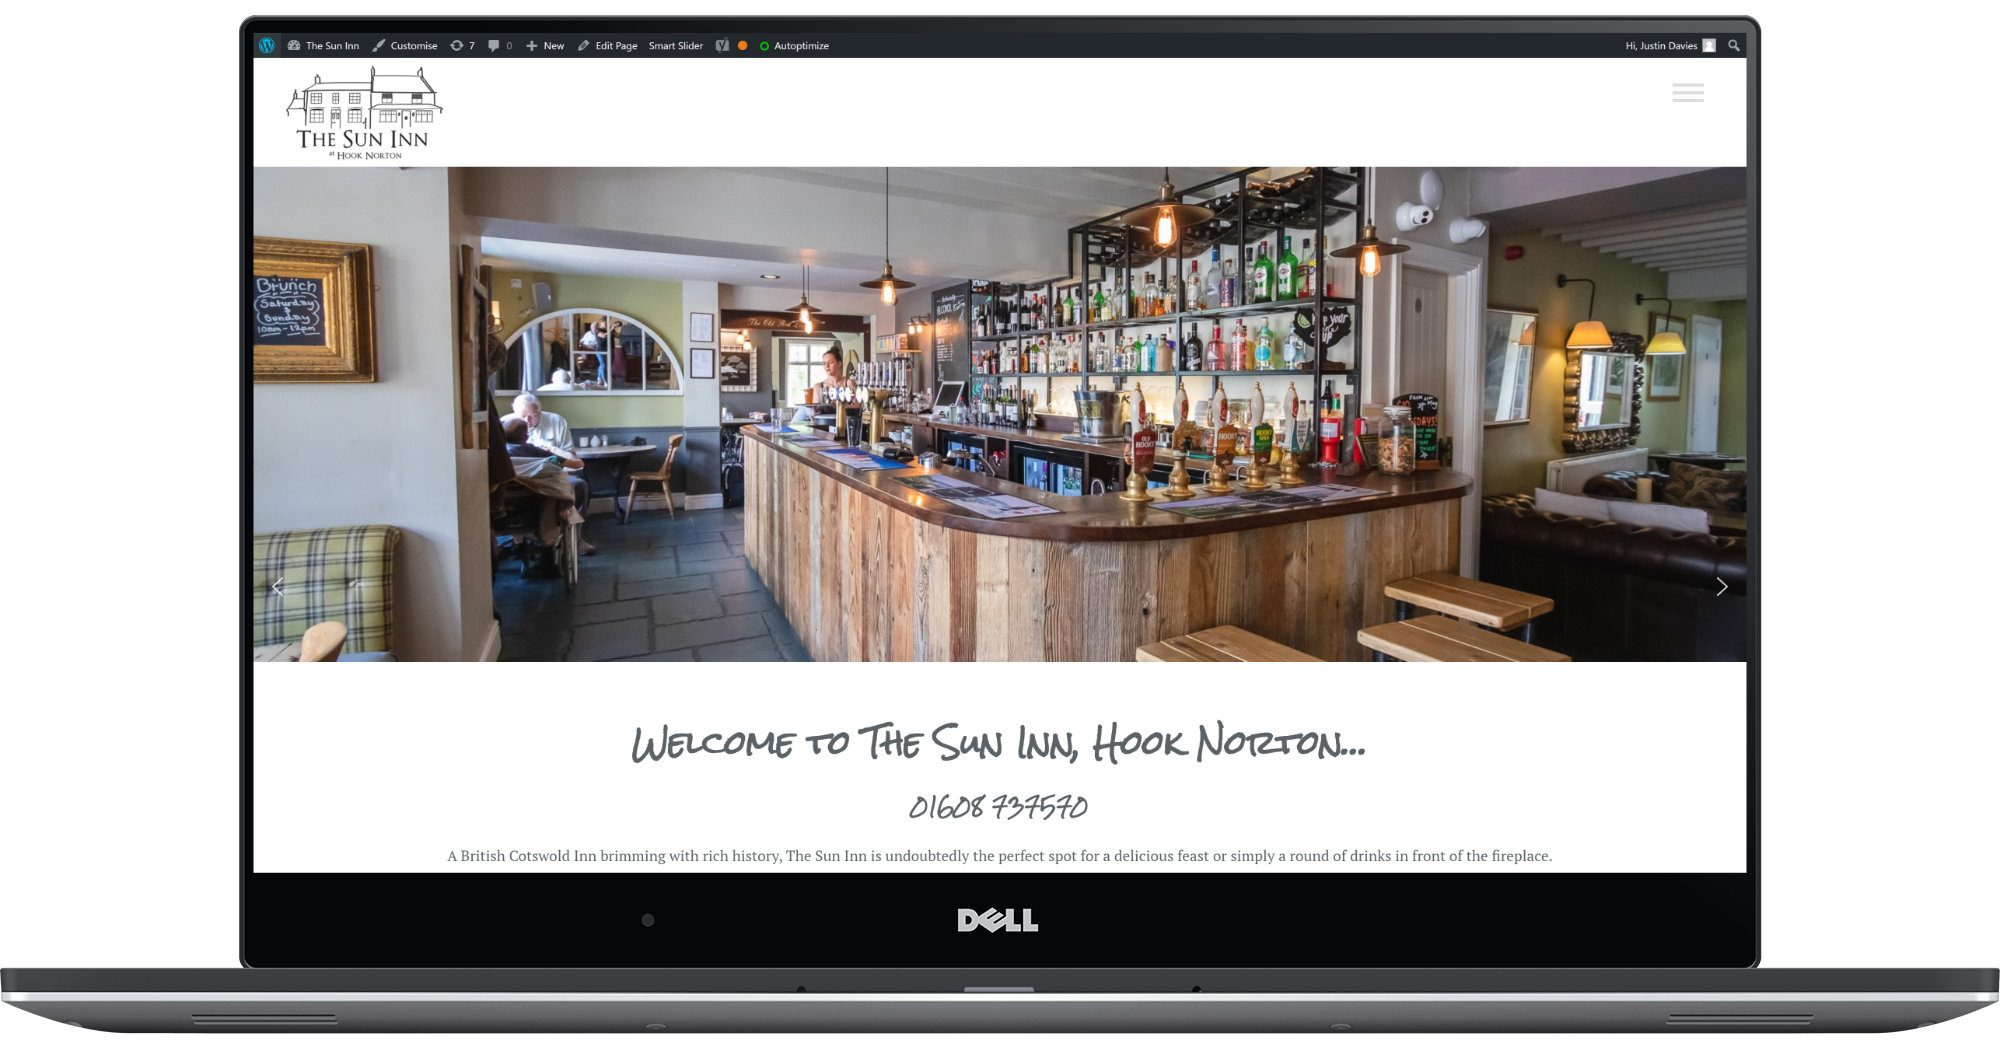 The Sun Inn Hook Norton Laptop Screenshot